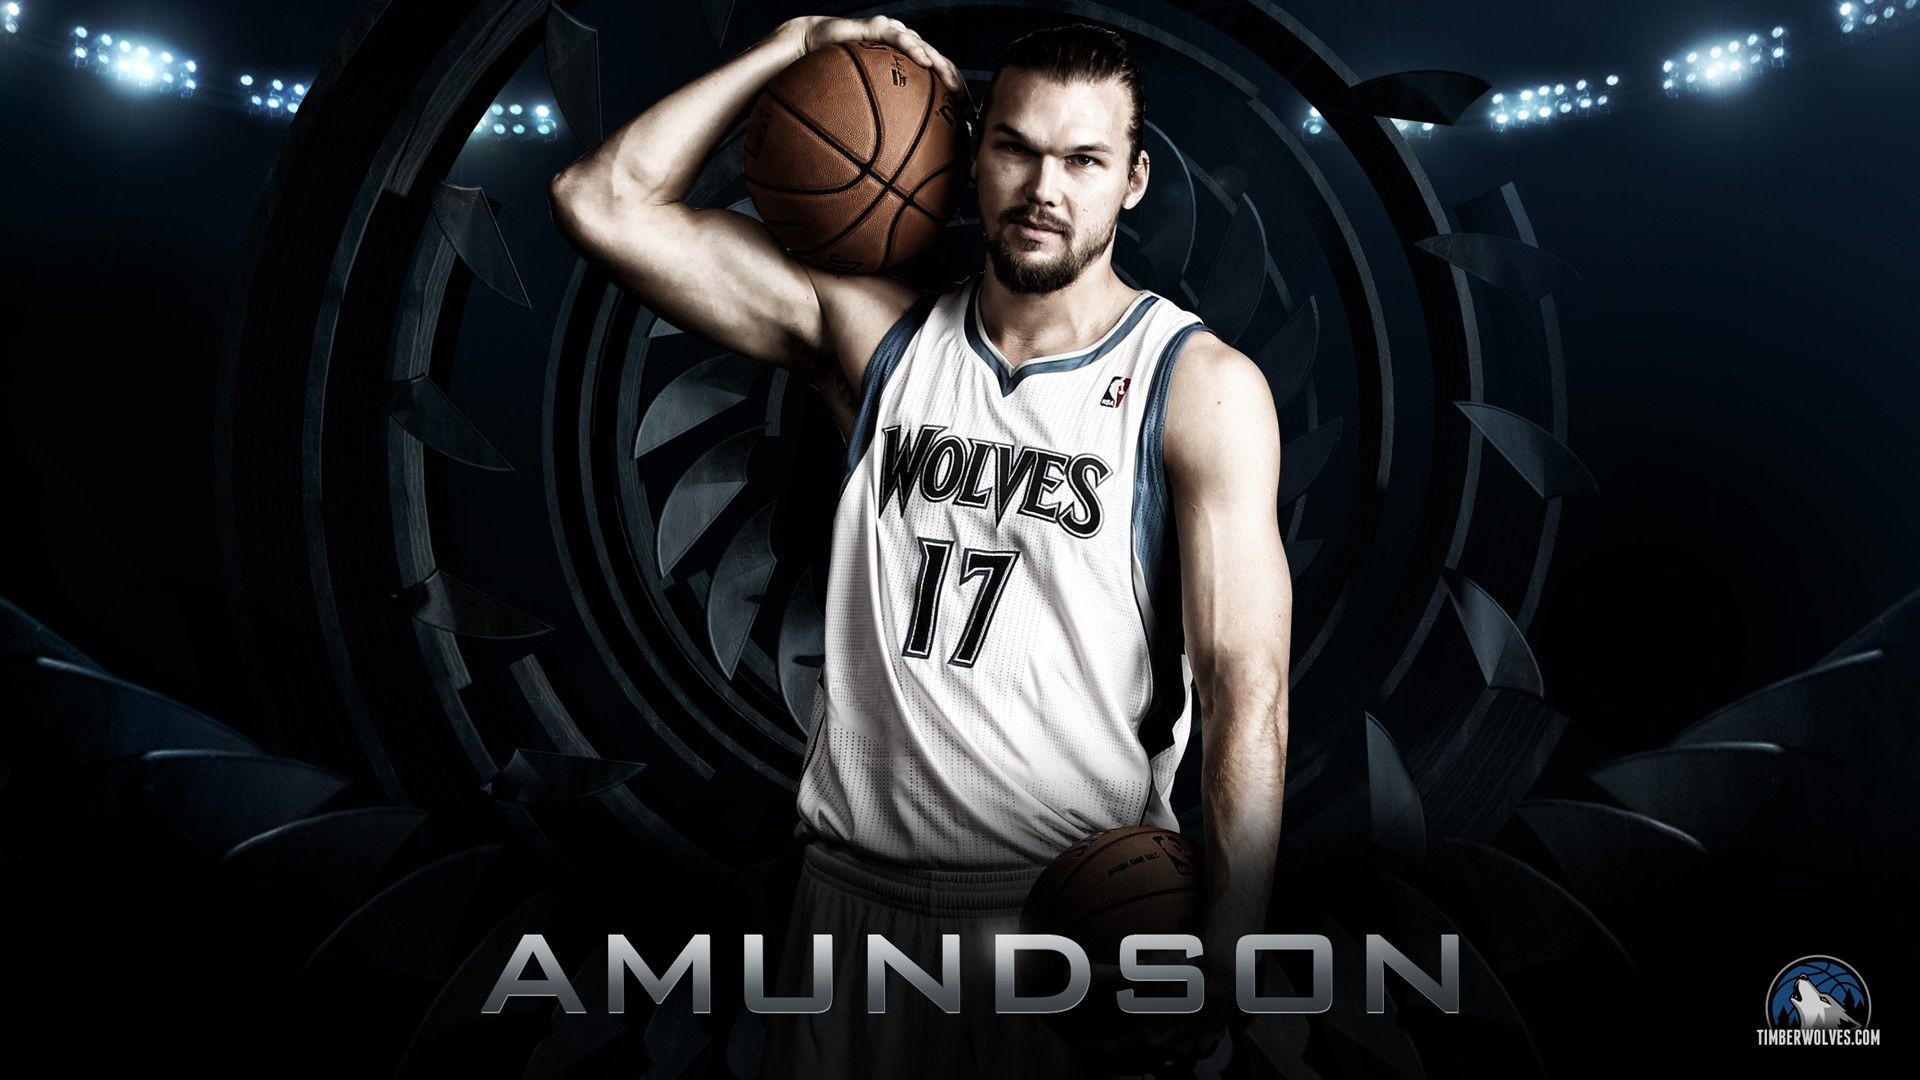 1920x1080 MINNESOTA TIMBERWOLVES nba basketball (9) wallpaper